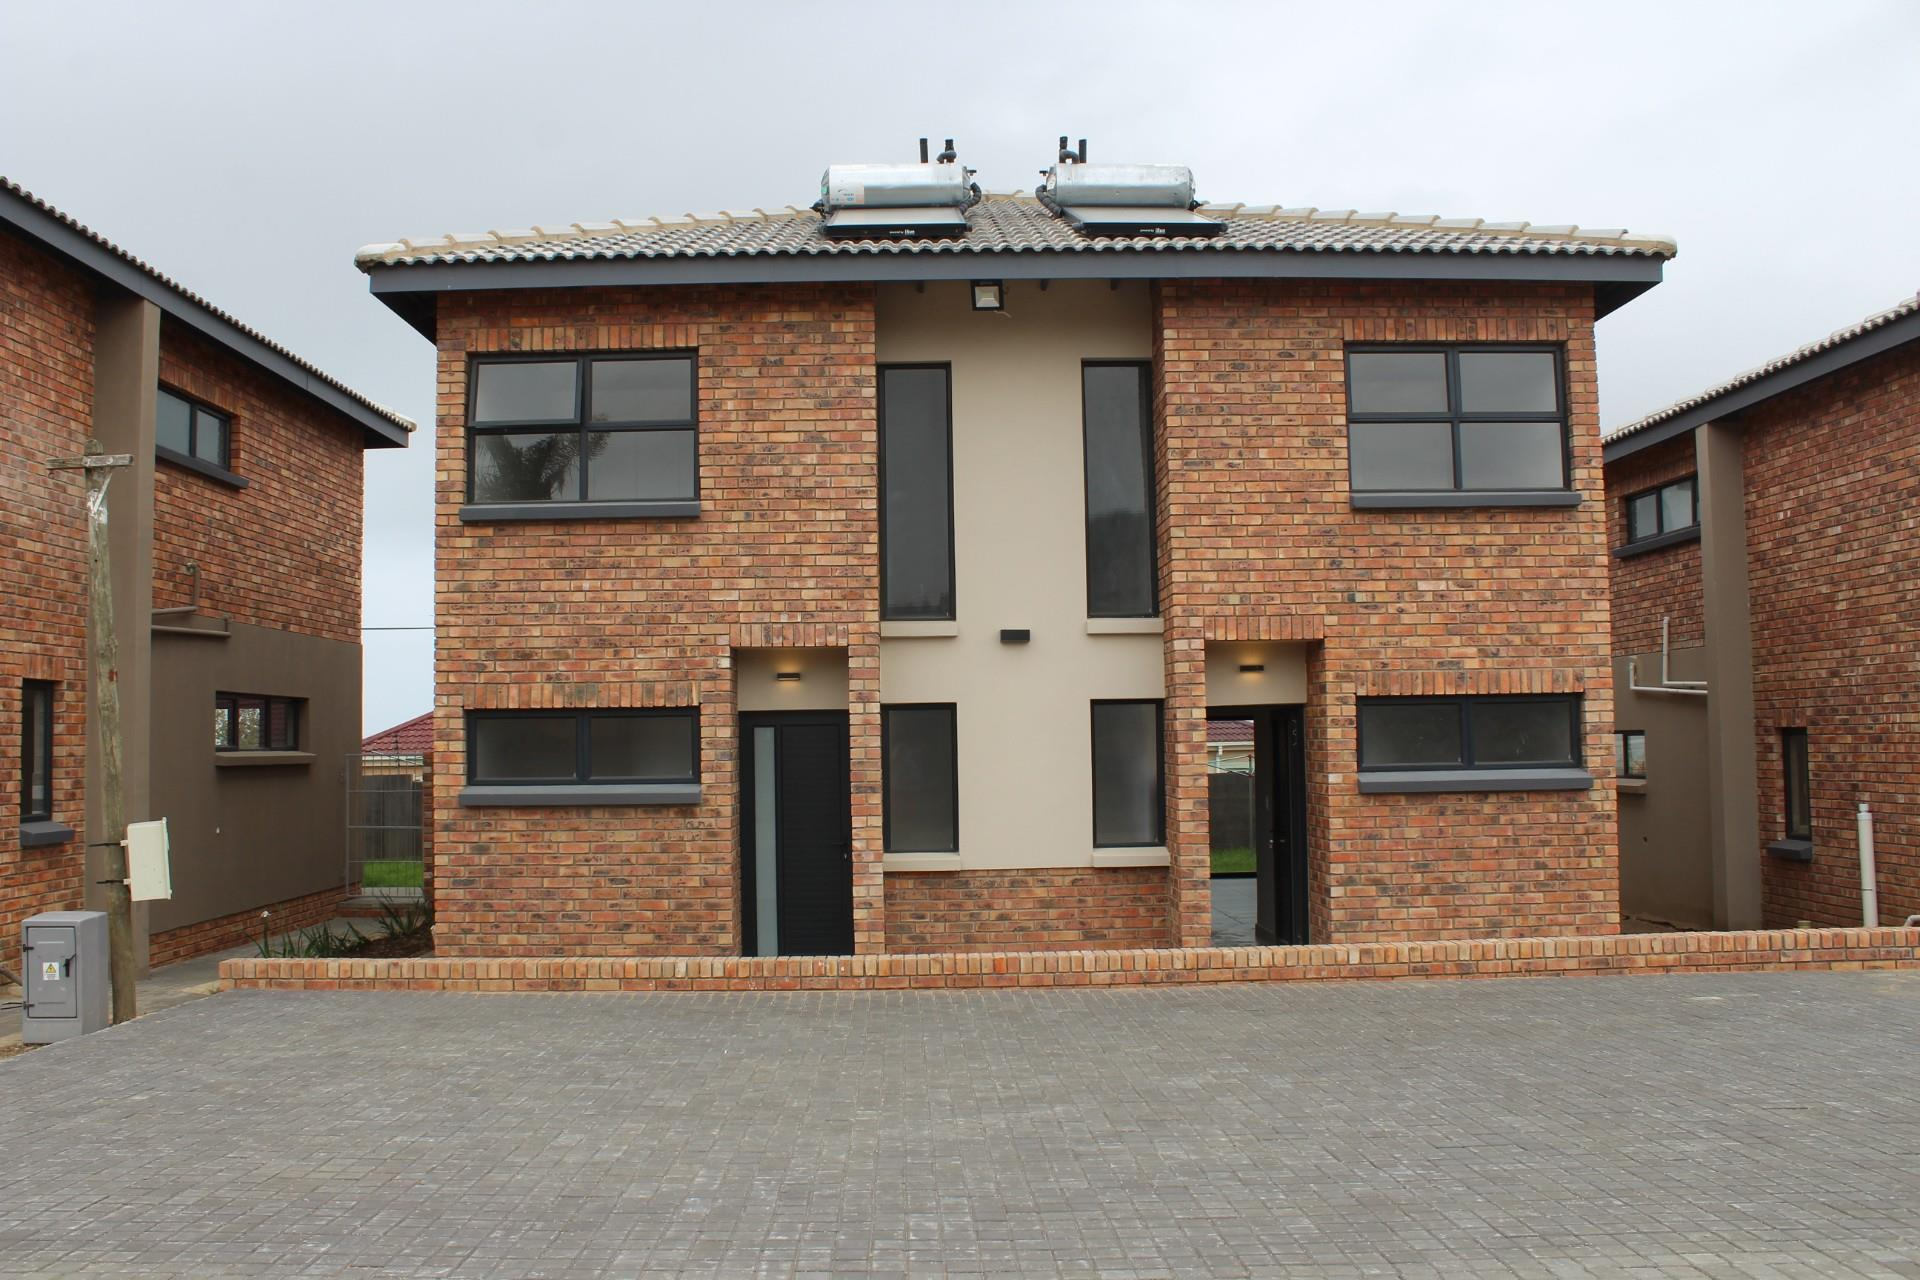 2 Bedroom Town house For Sale in Gonubie